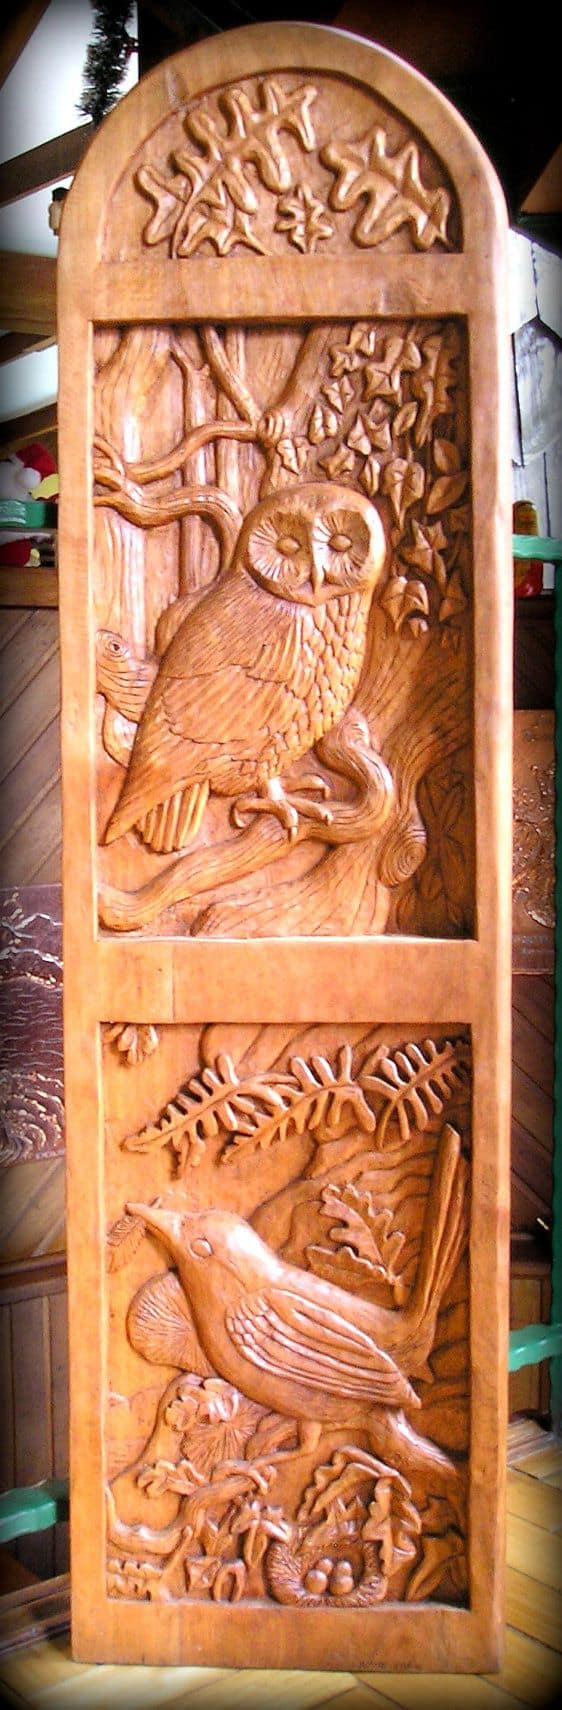 Wood Carving Patterns Custom Design Ideas